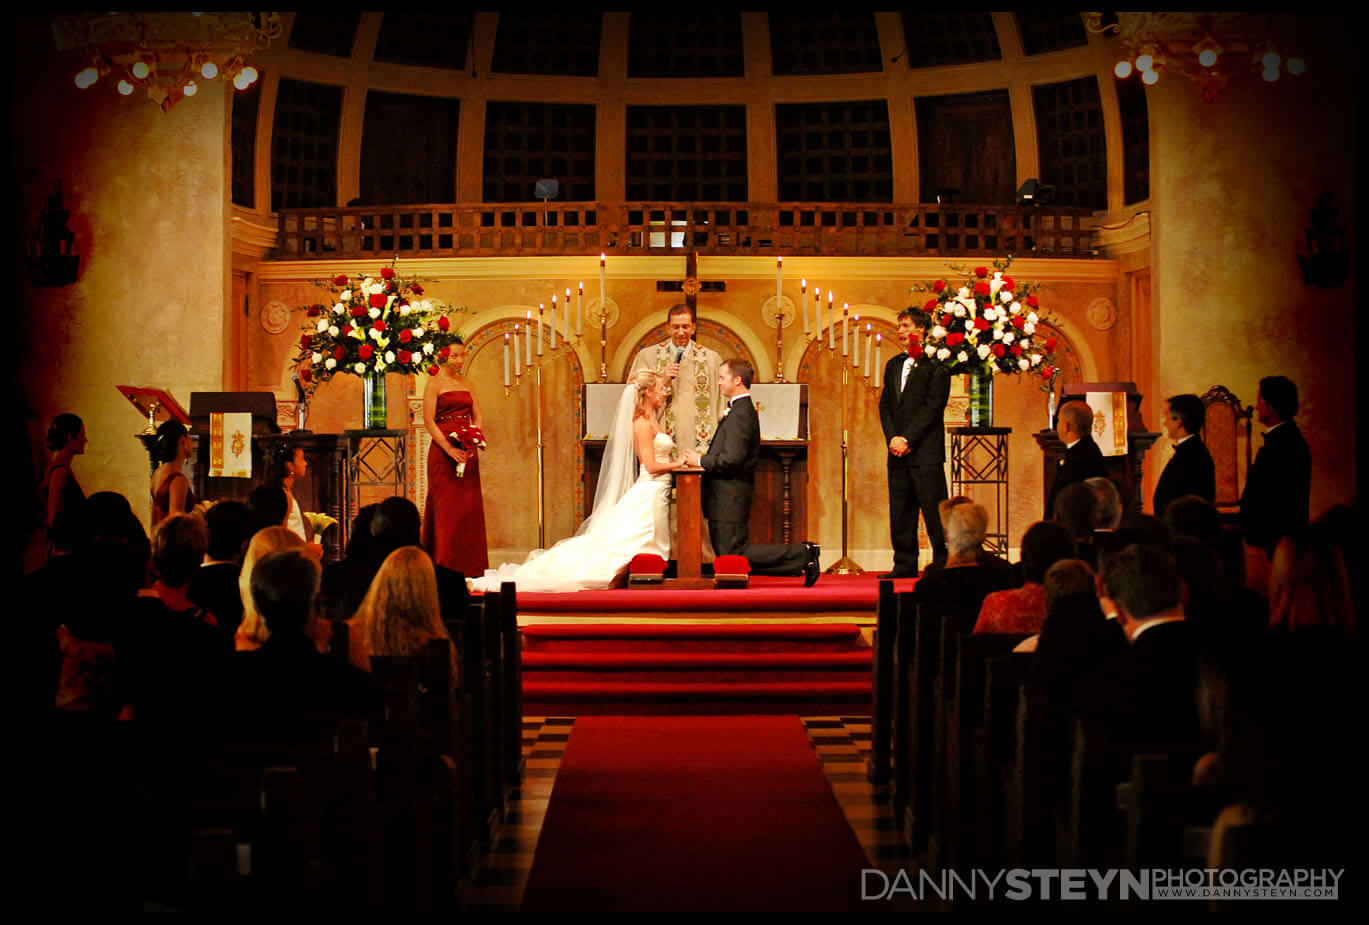 Biltmore hotel wedding photography miami for Biltmore estate wedding prices